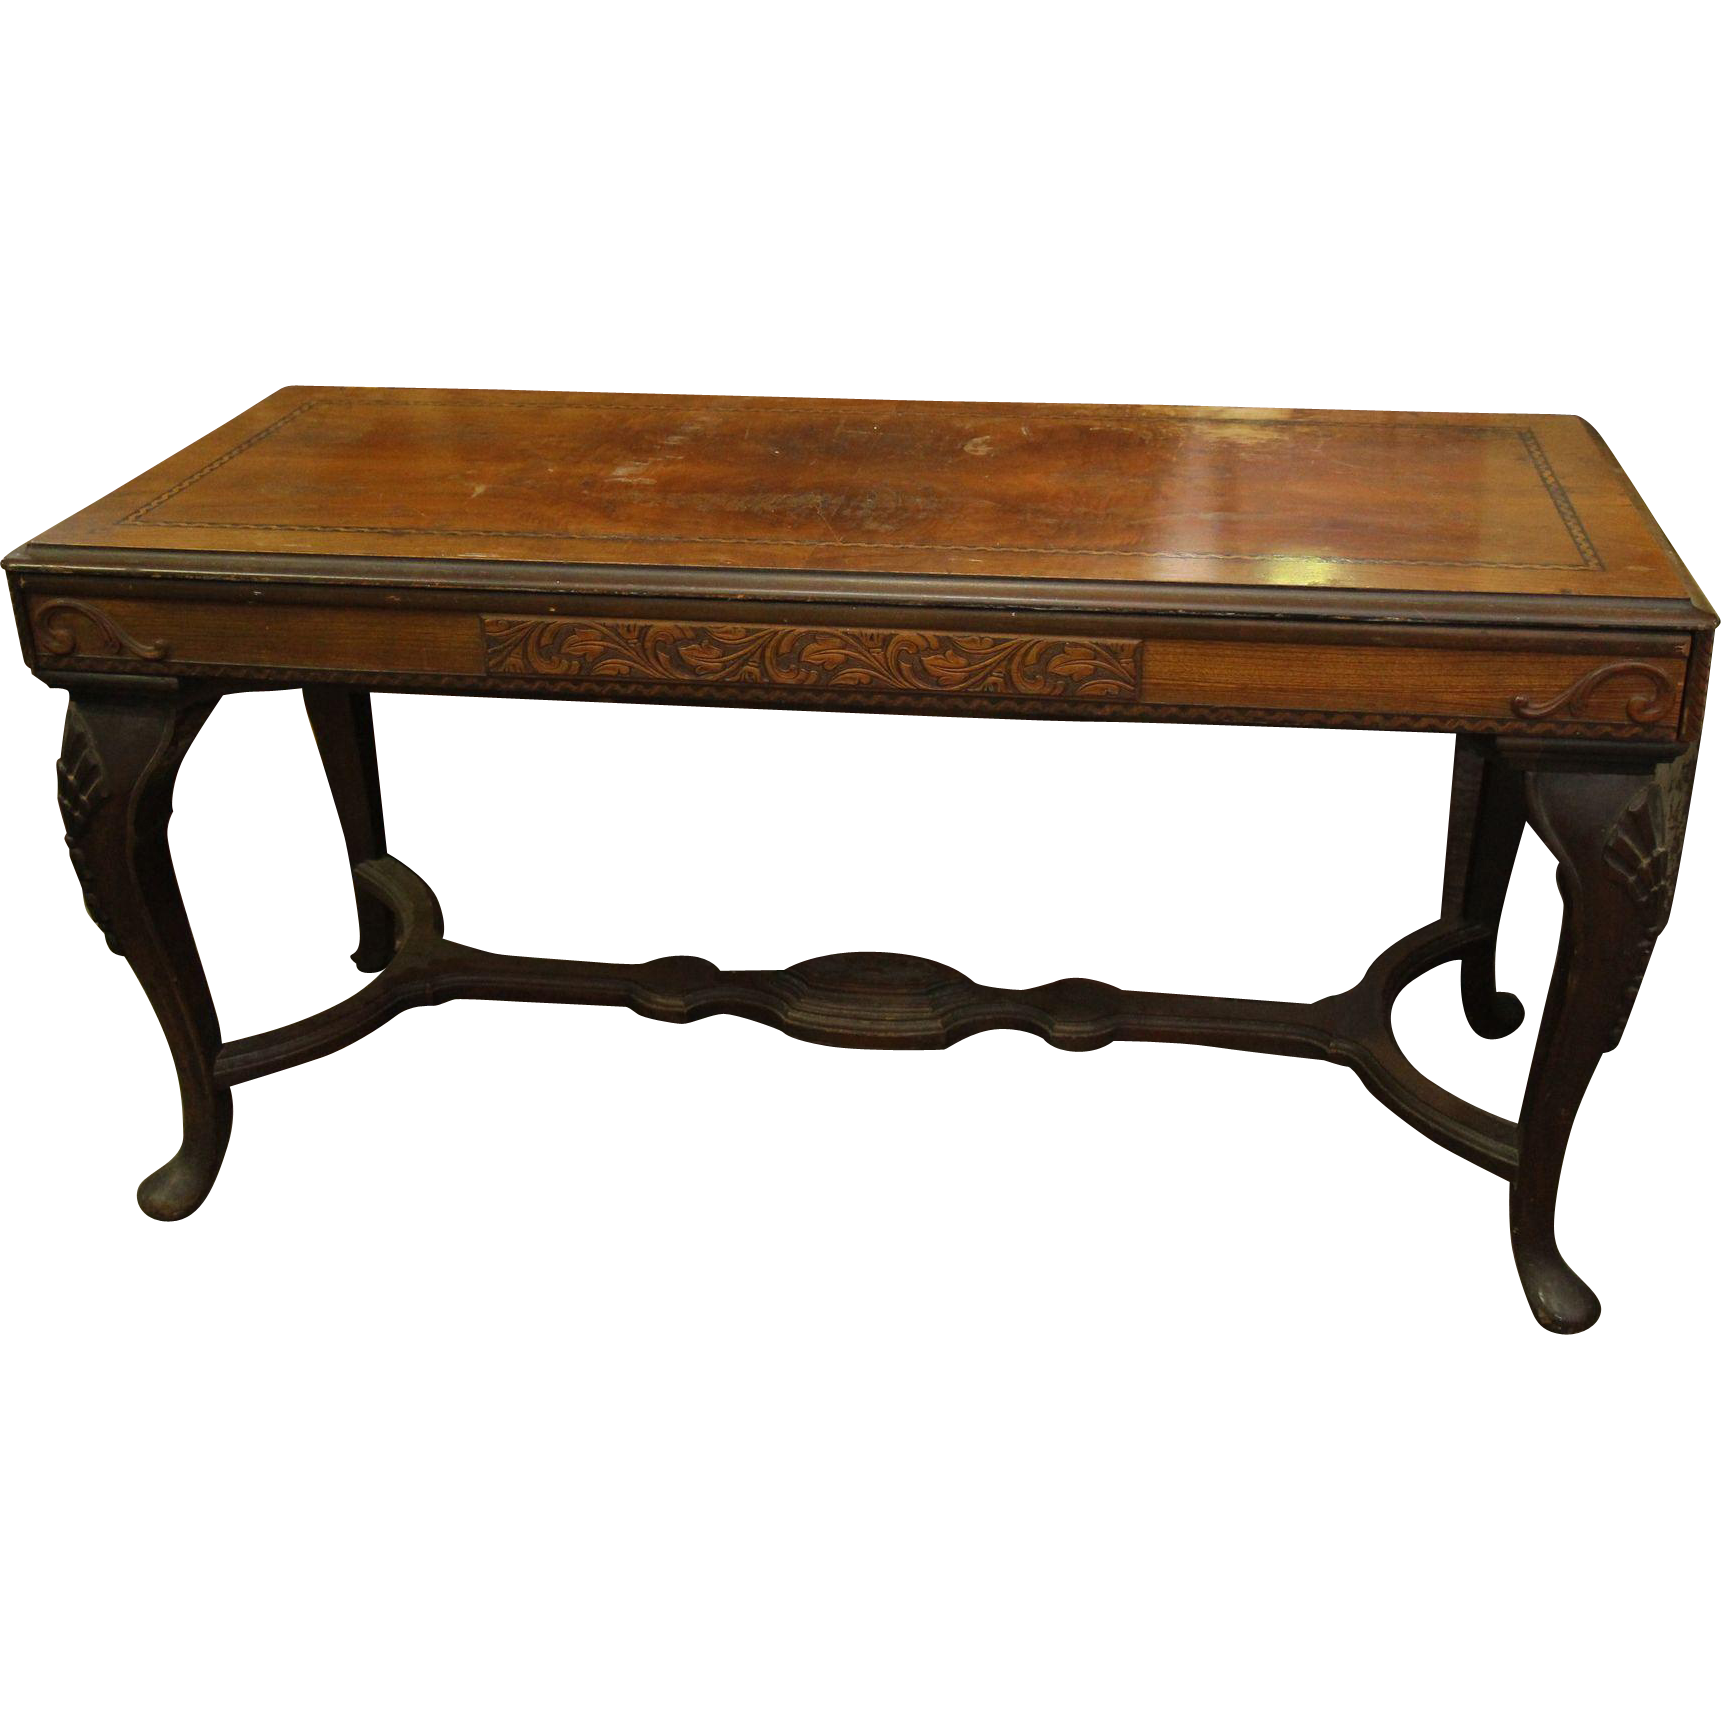 Louis XVI style walnut console table with carved details